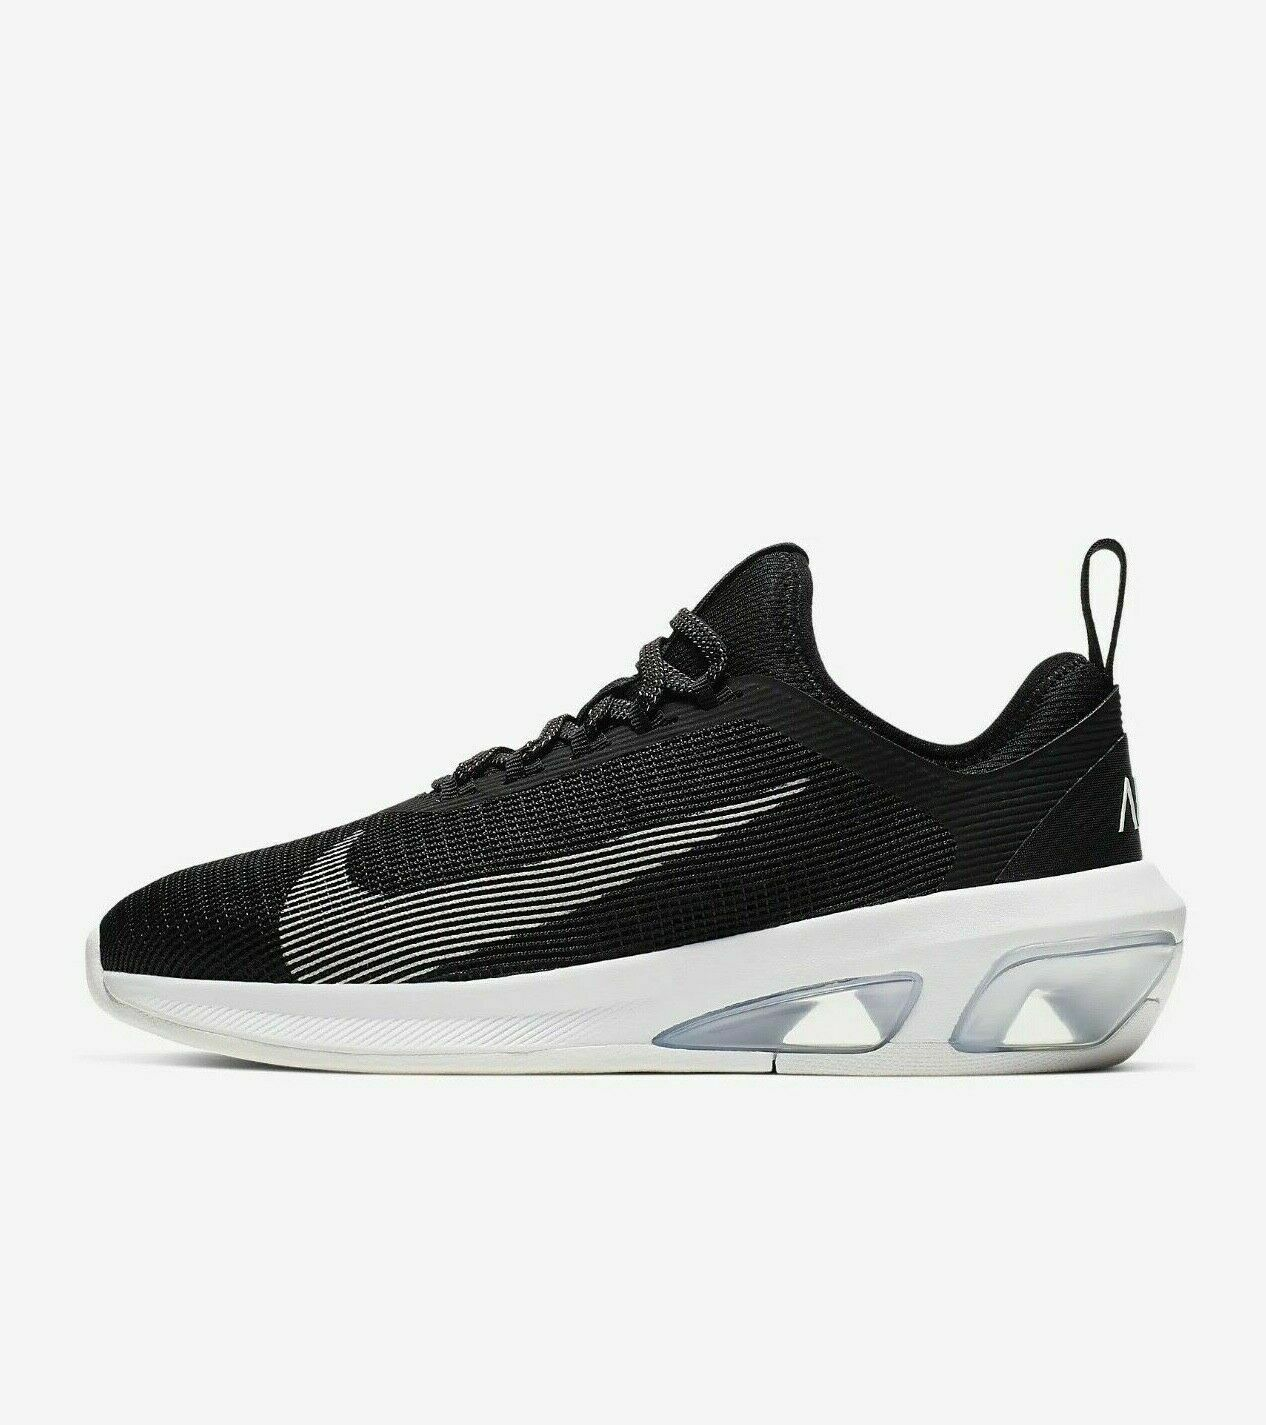 NIKE Air Max Fly Black White Grey AT2506 002 Running Shoes Men's Multi Sizes